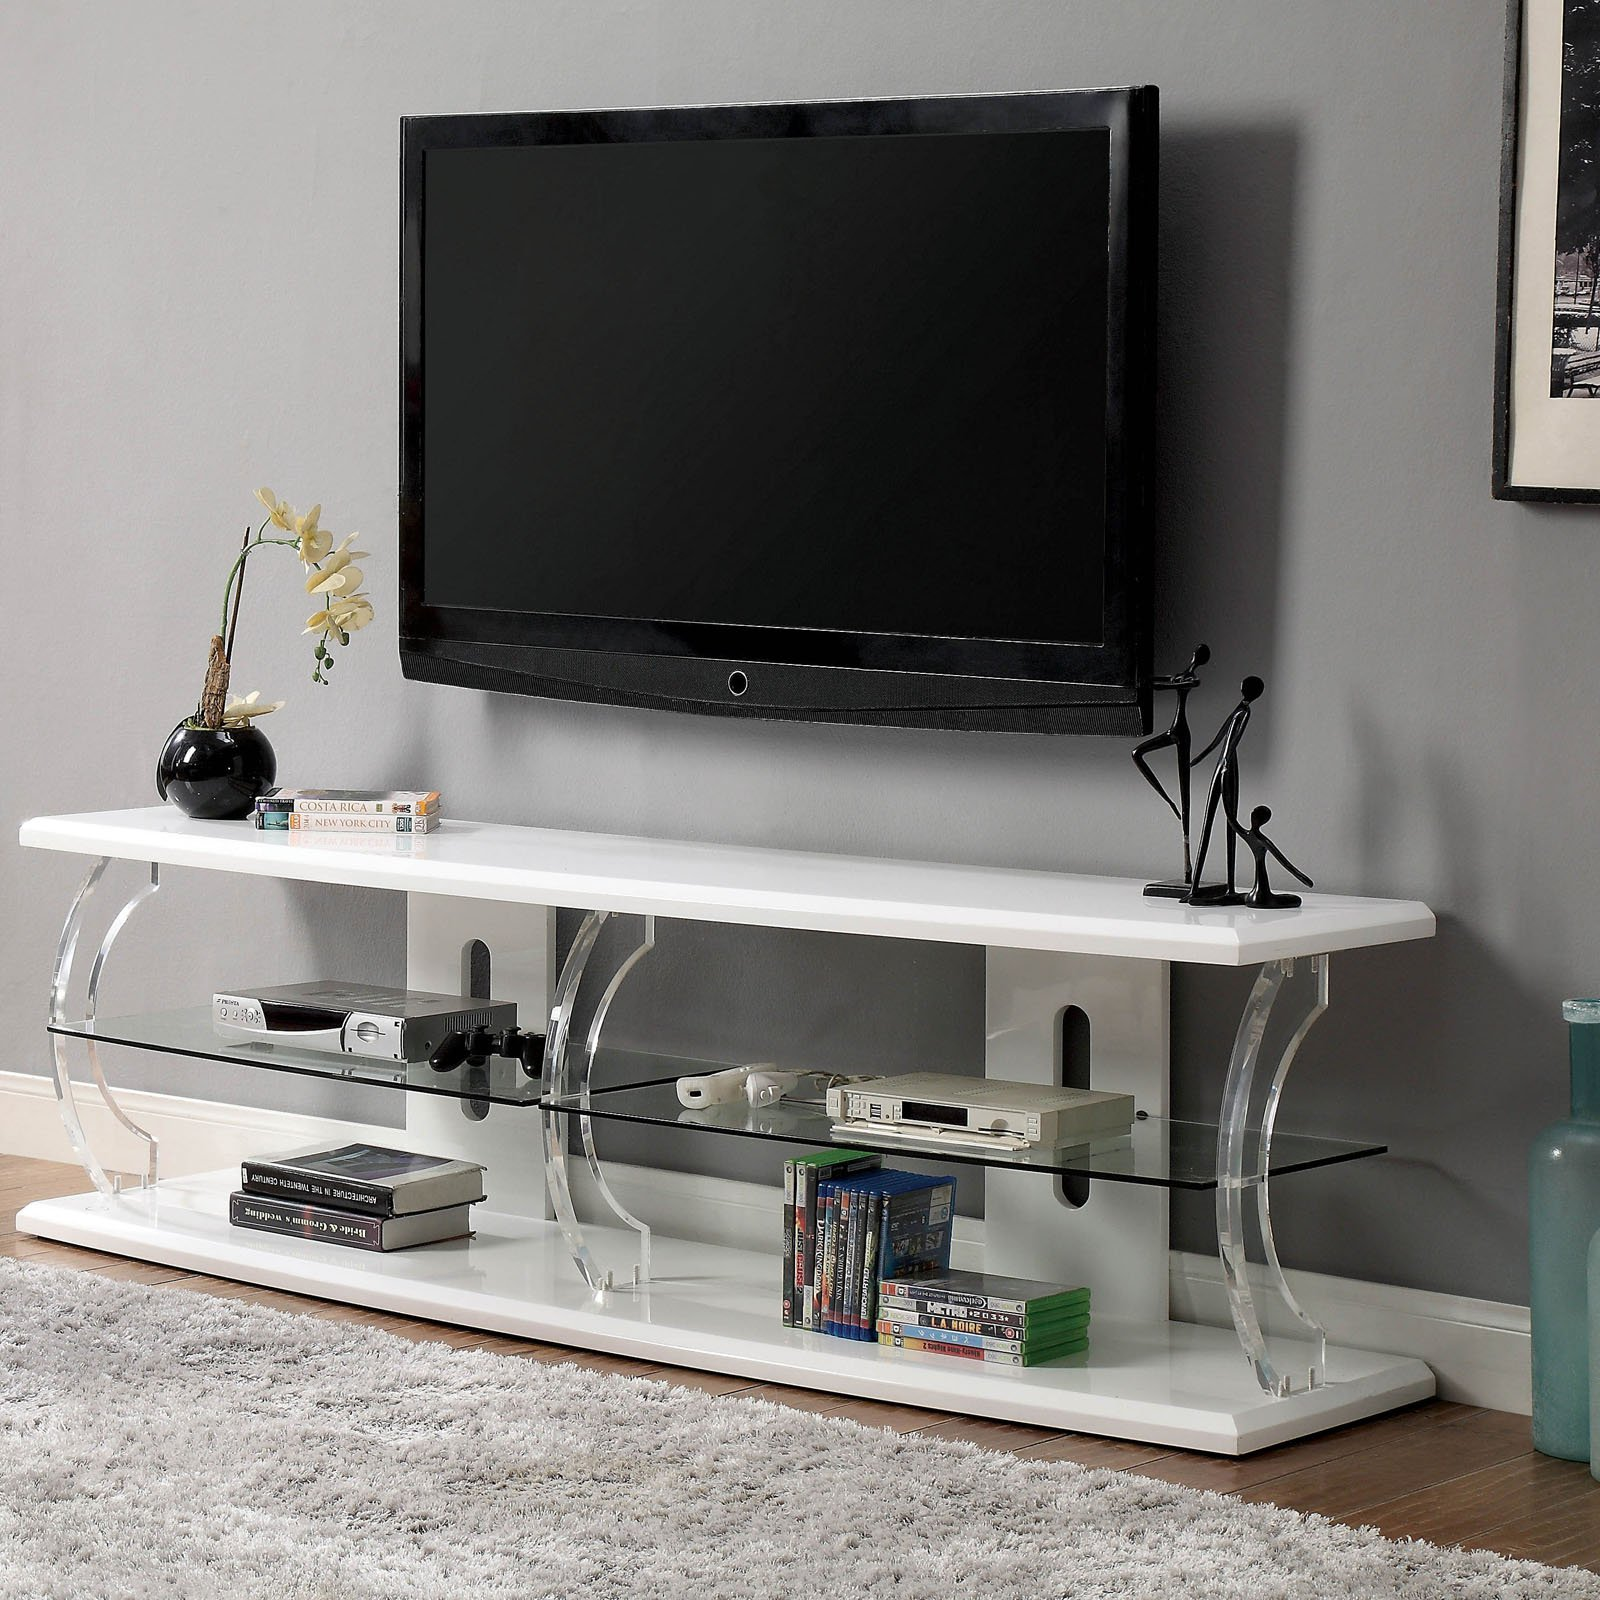 Furniture of America Daley LED TV Stand